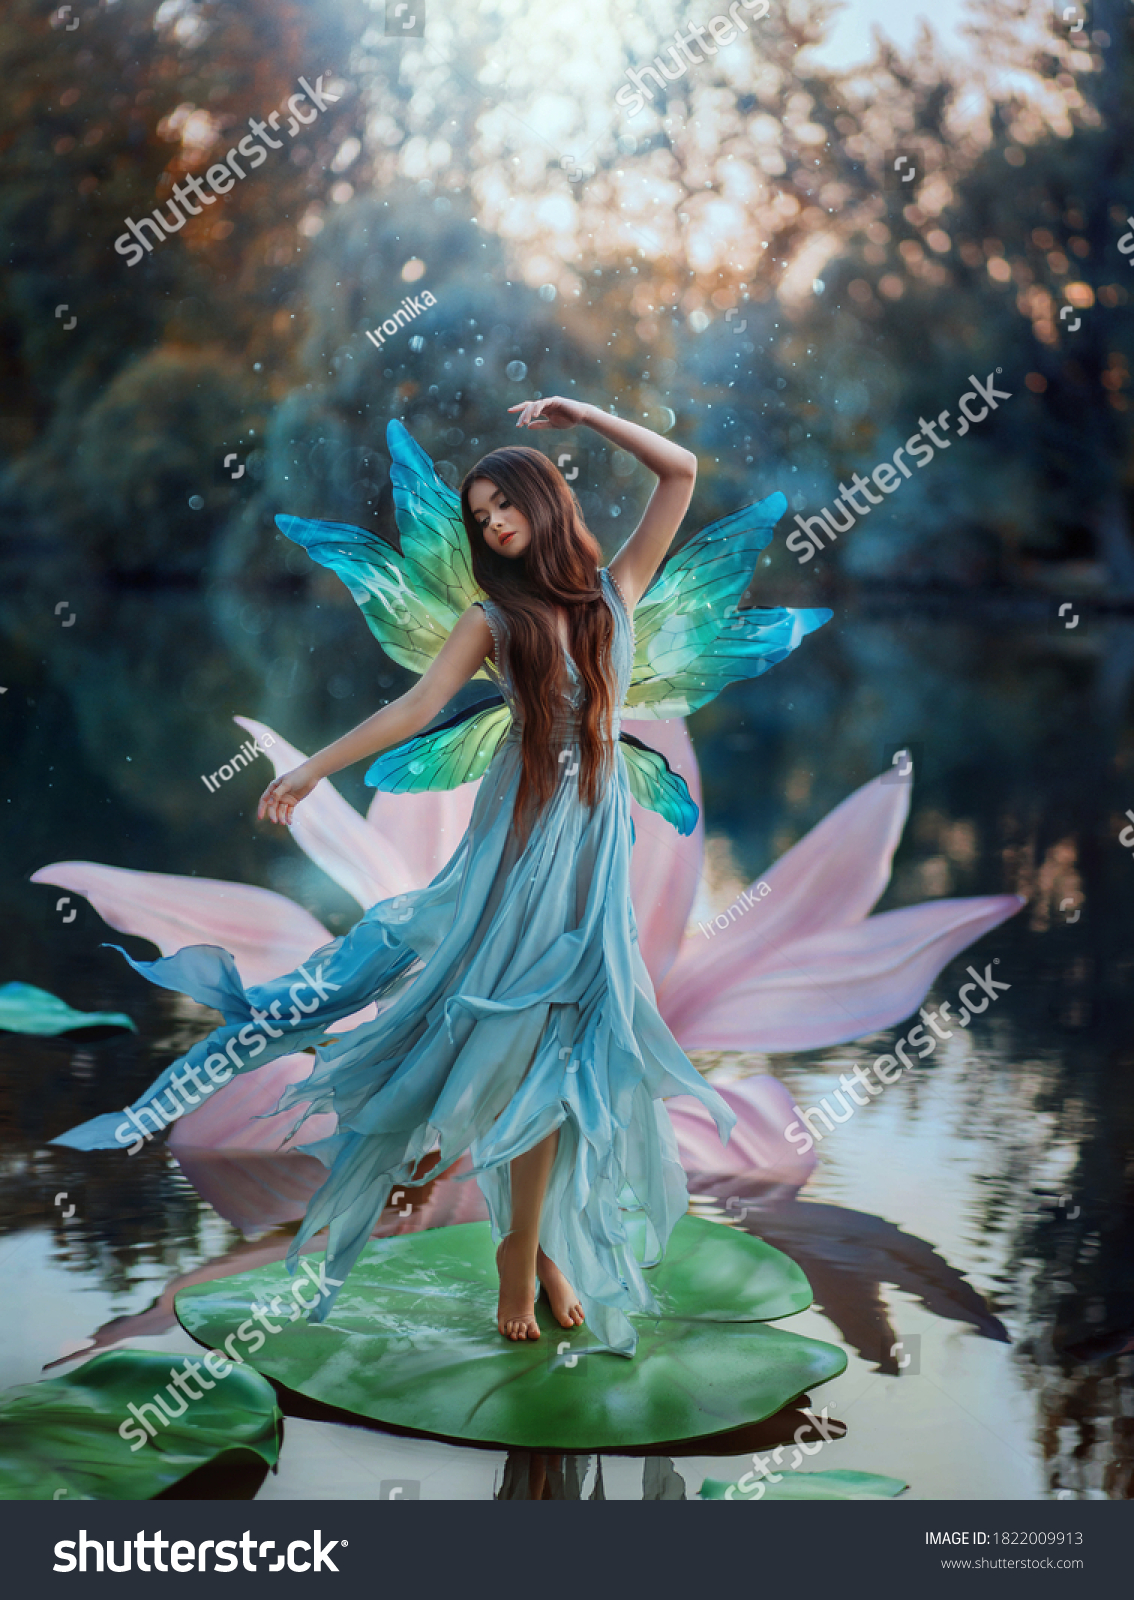 Beautiful young fantasy woman in image river fairy dances on water pink lily flower. long silk dress flies in wind motion butterfly wings magic shiny. Art Girl pixie. Background dark nature, blue lake #1822009913